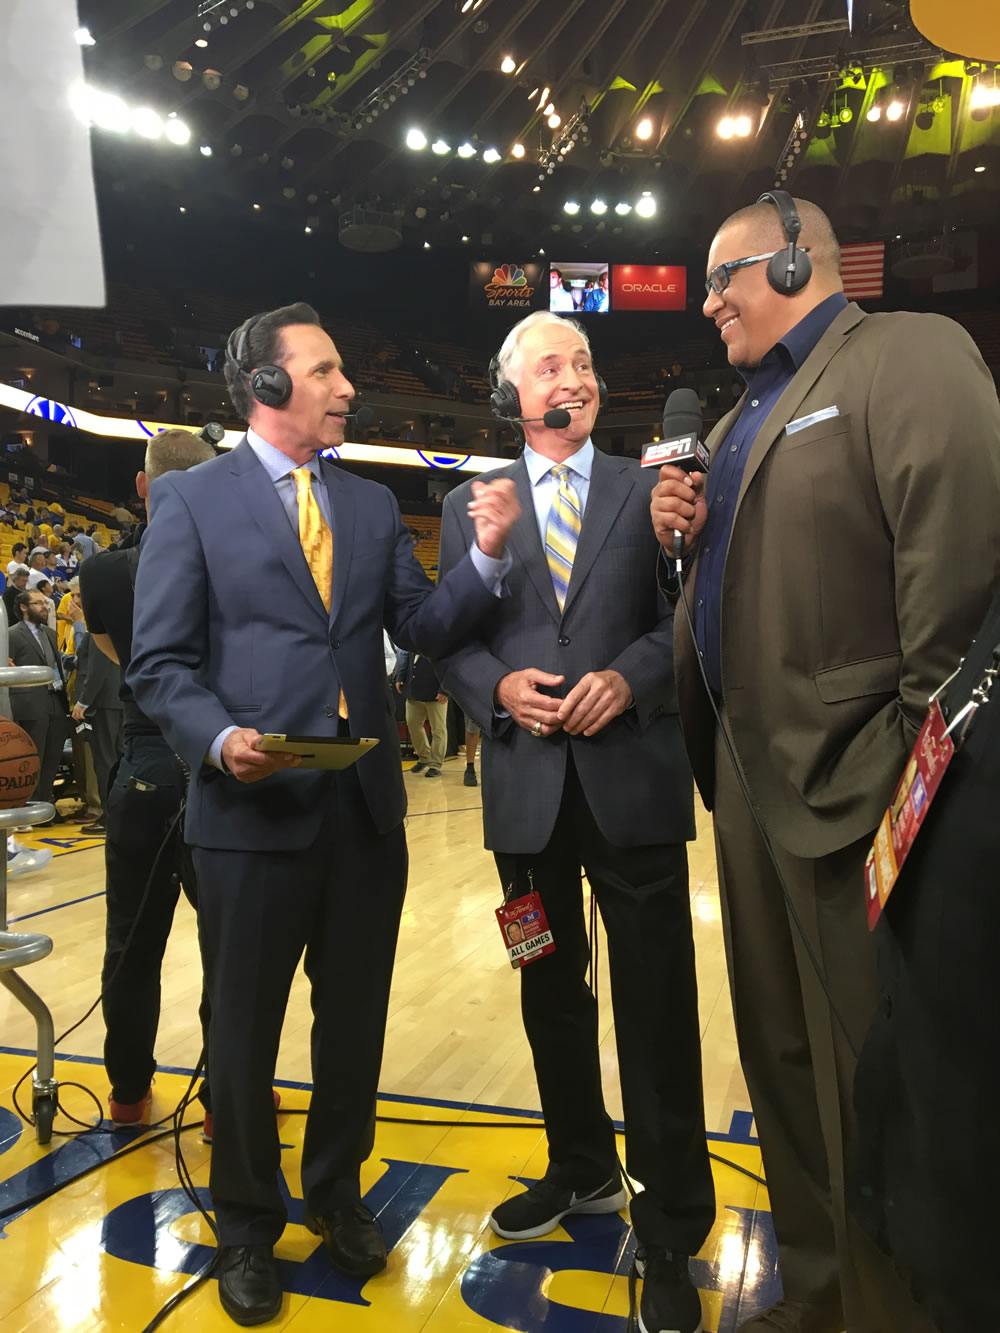 <div class='meta'><div class='origin-logo' data-origin='none'></div><span class='caption-text' data-credit='KGO-TV'>Larry Beil, Mike Shumann and ESPN's Marc Spears talk basketball before game 2 of the NBA Finals in Oakland, Calif. on Sunday, June 4, 2017.</span></div>